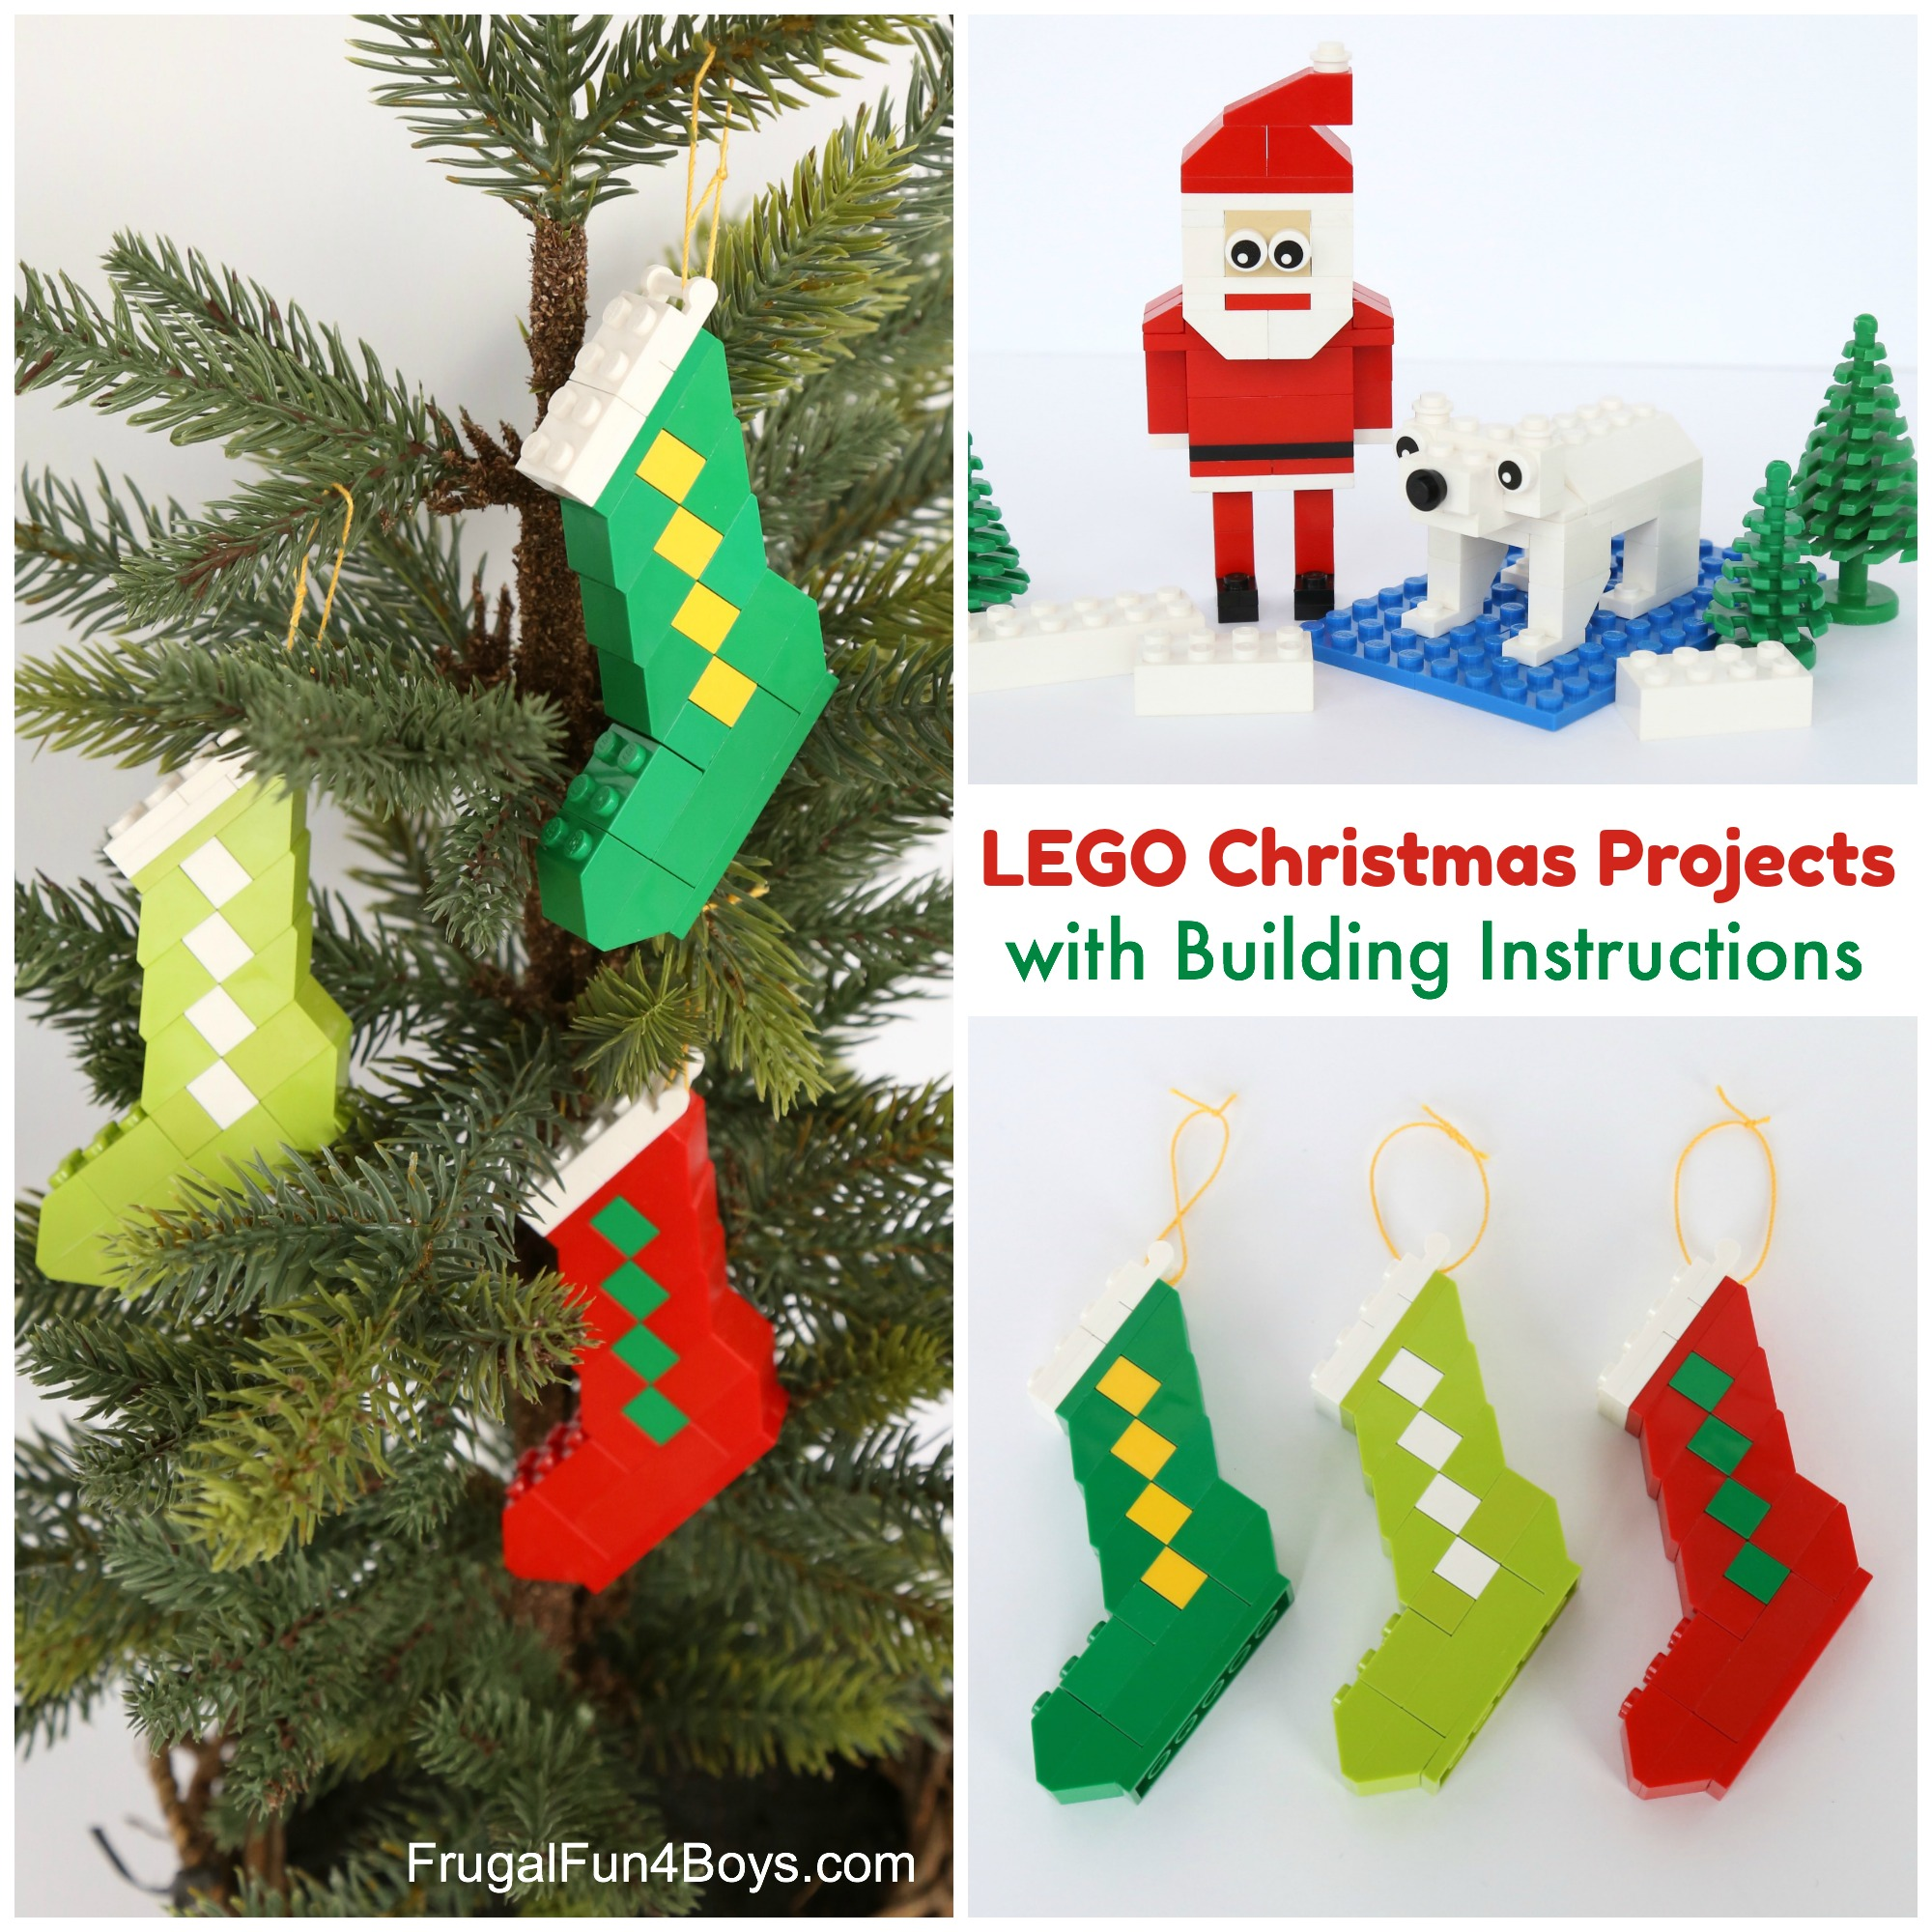 How to Build a LEGO Santa and Stocking Ornaments